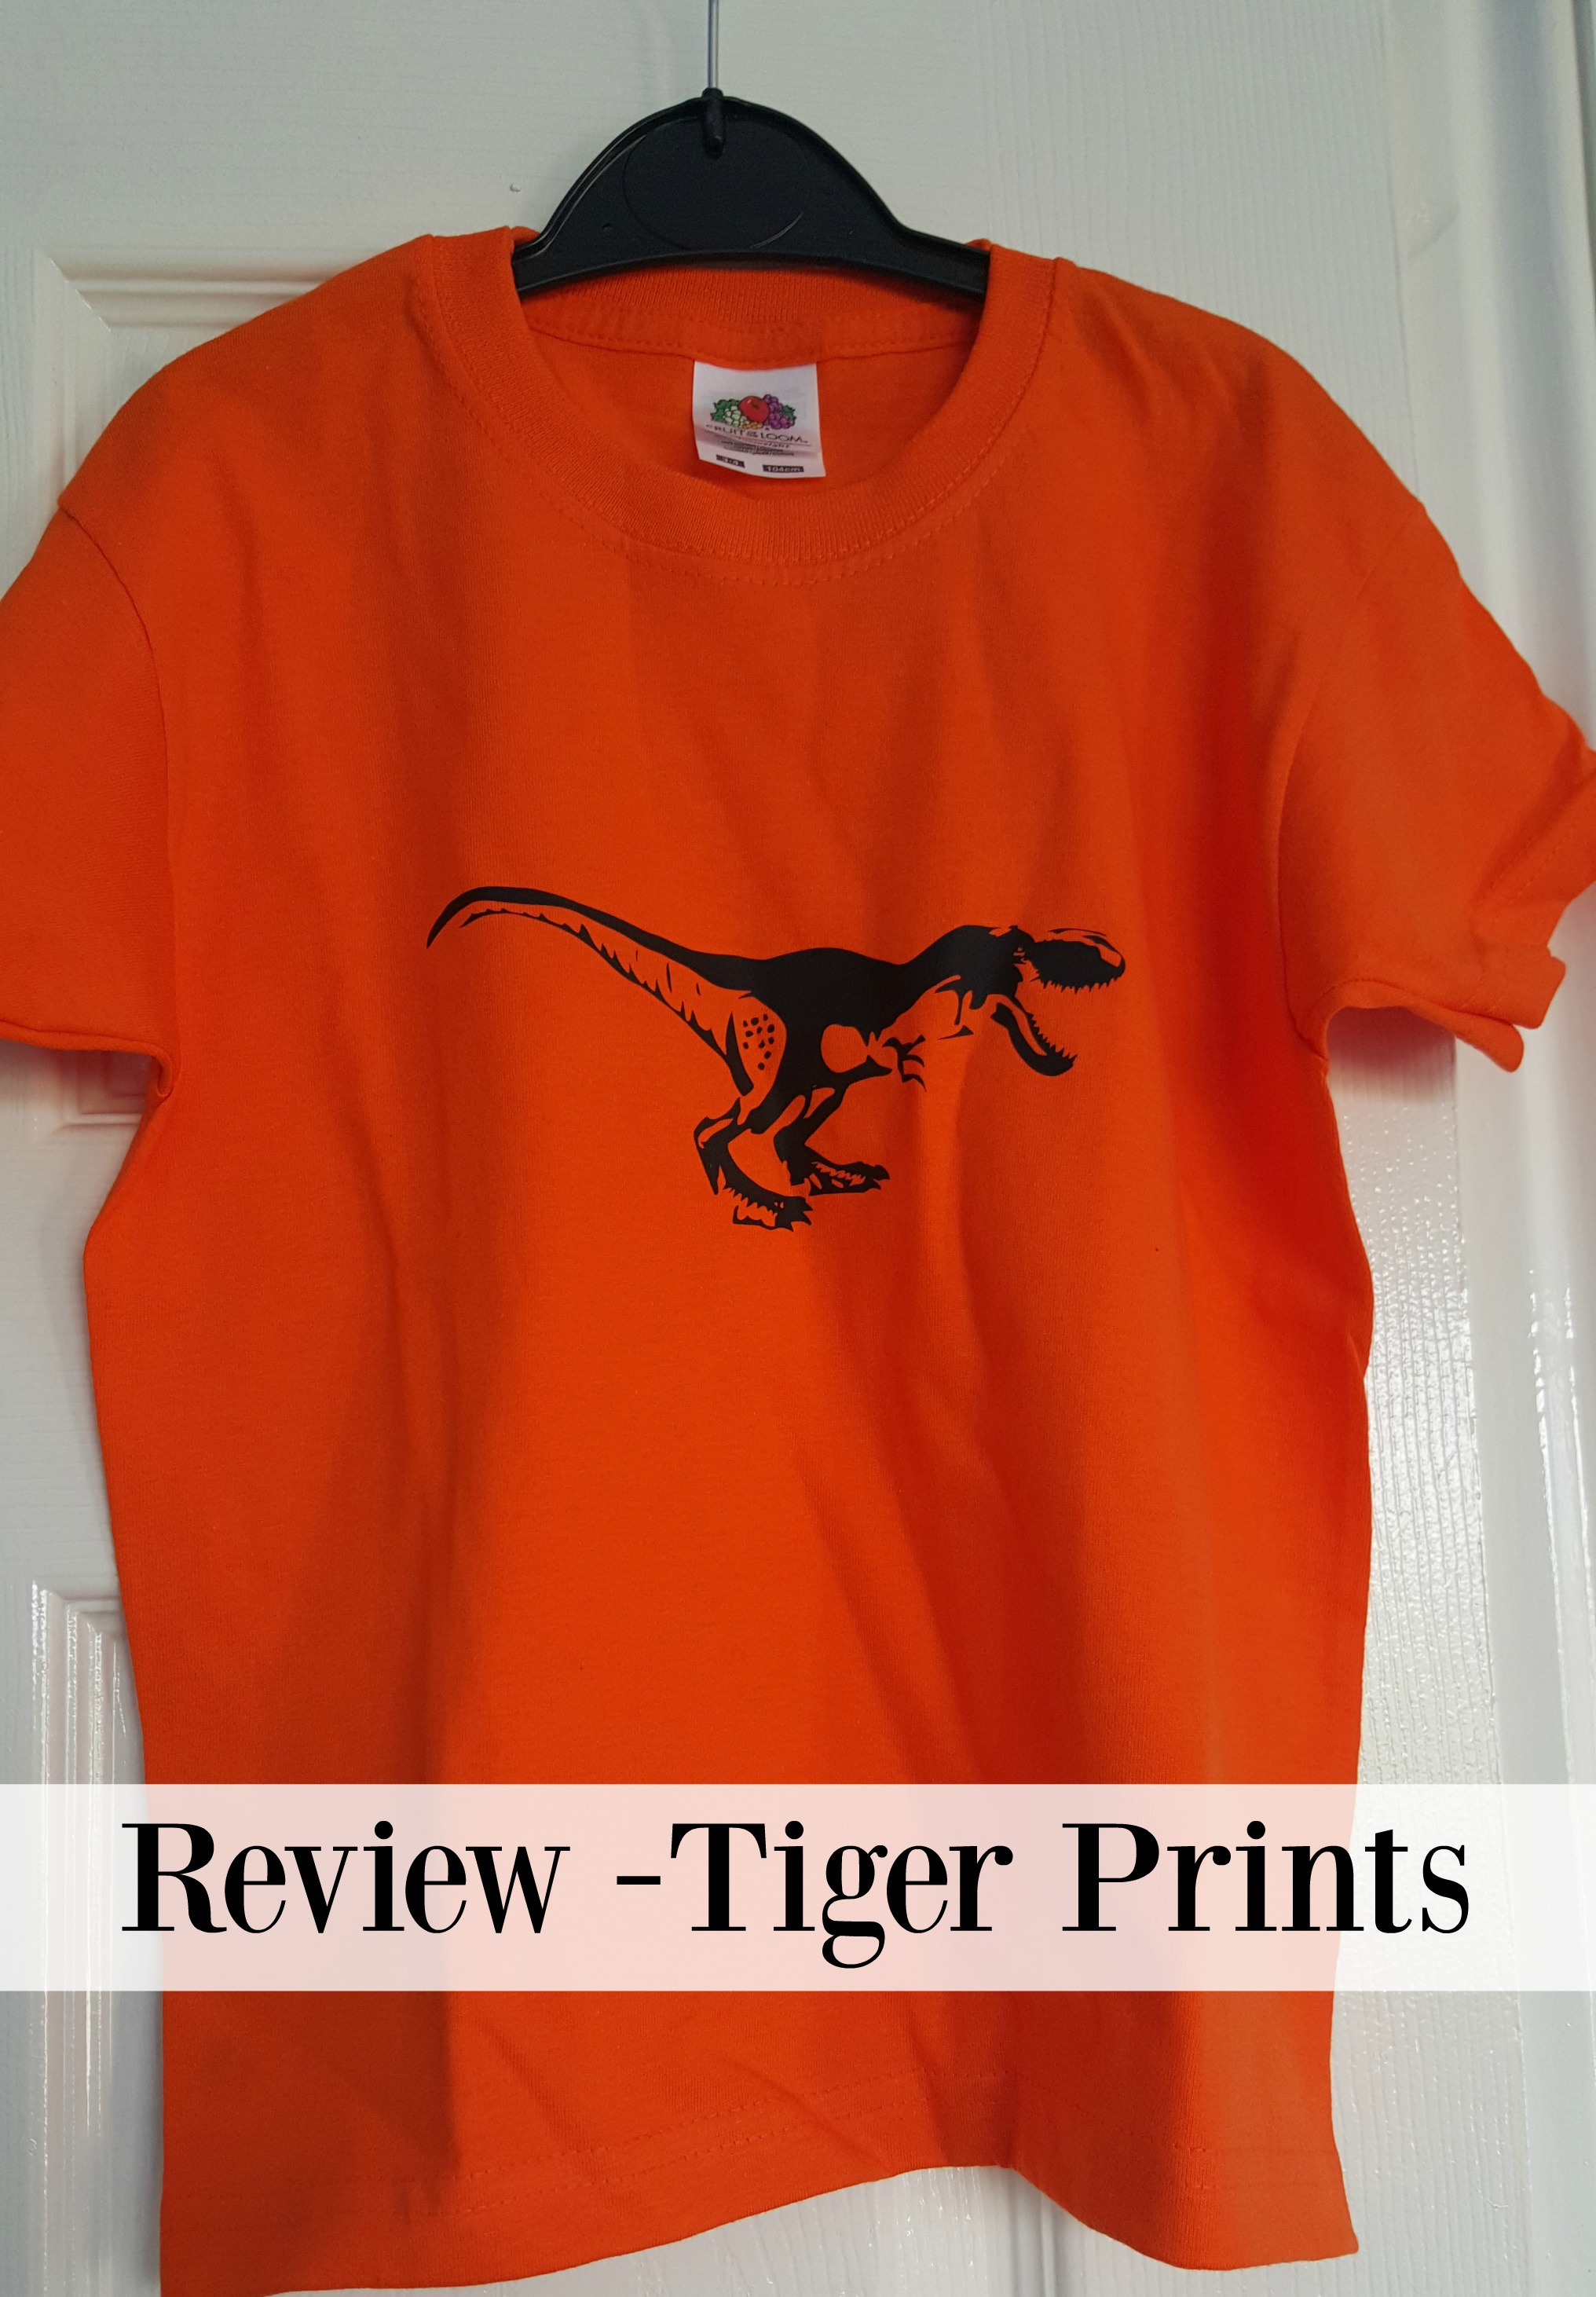 Tiger Prints review